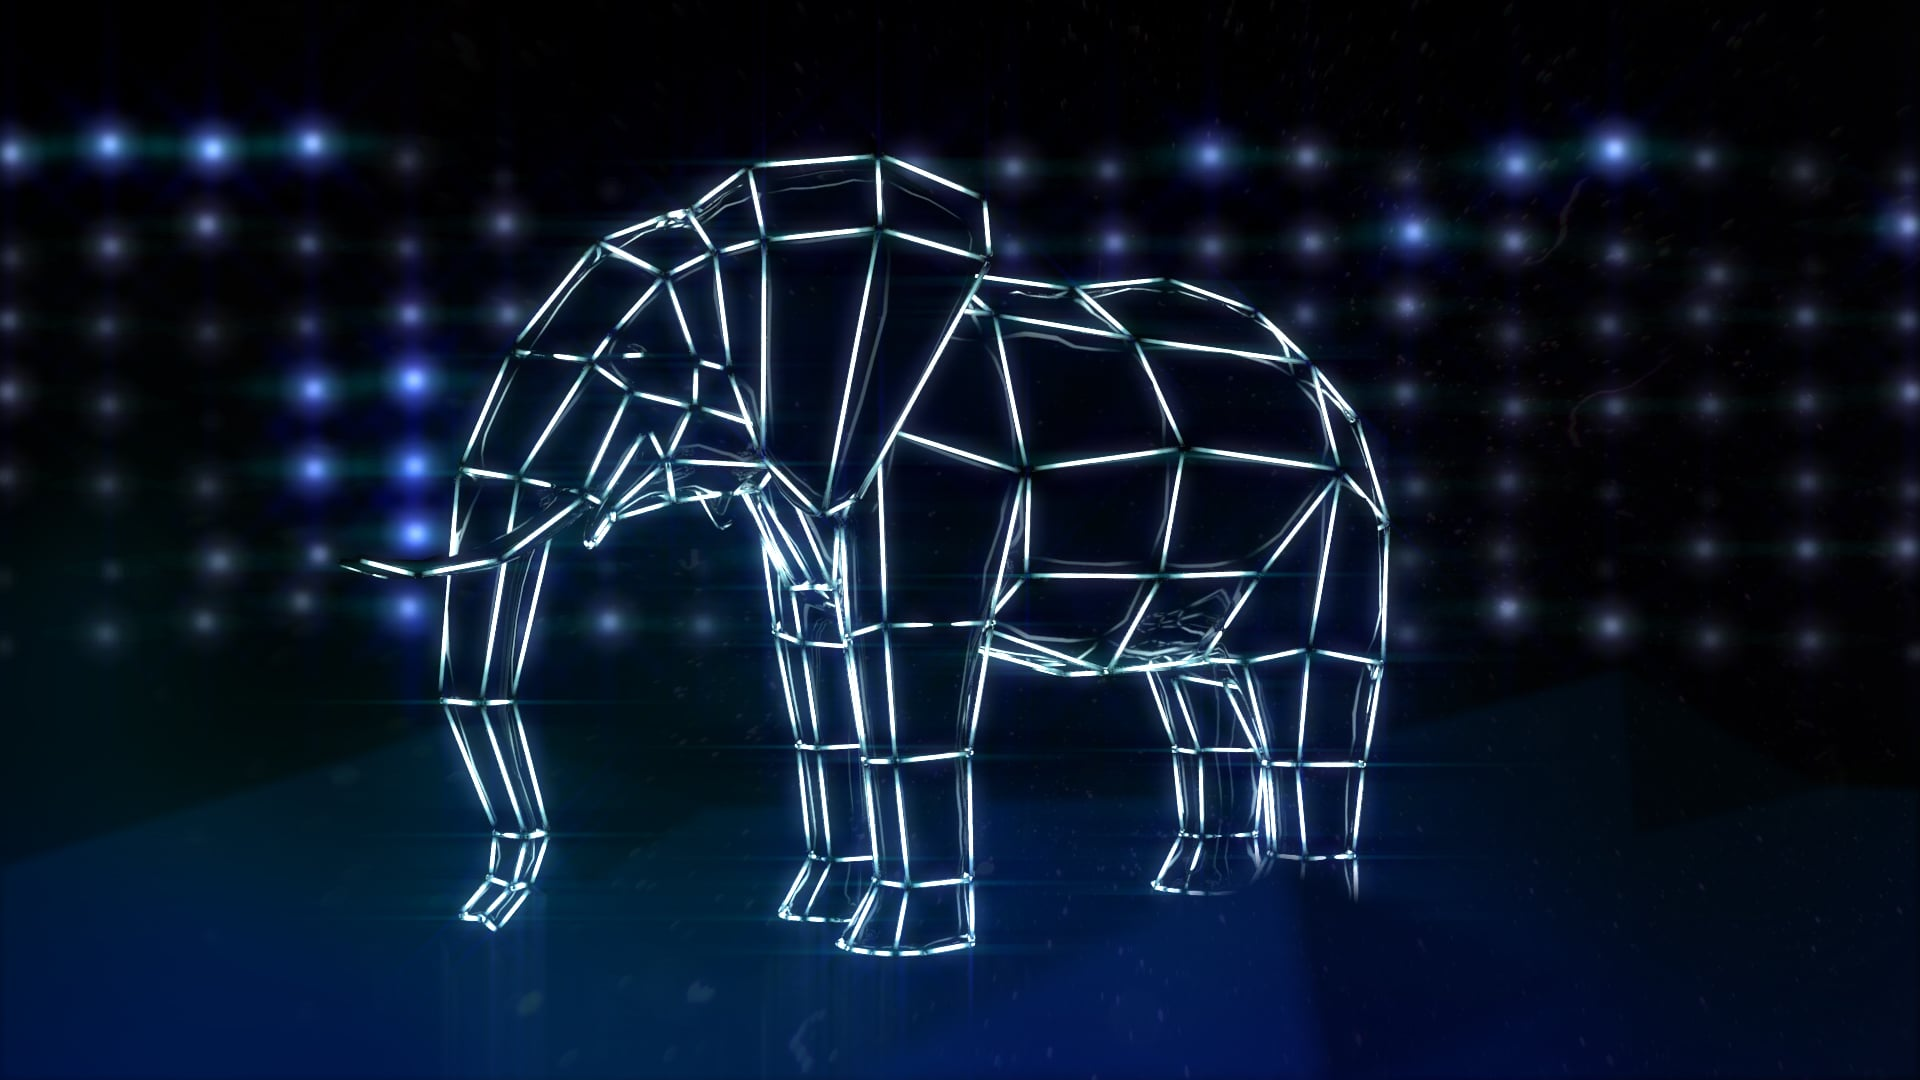 Zoo Lights Elephant Light Bar Concept 1